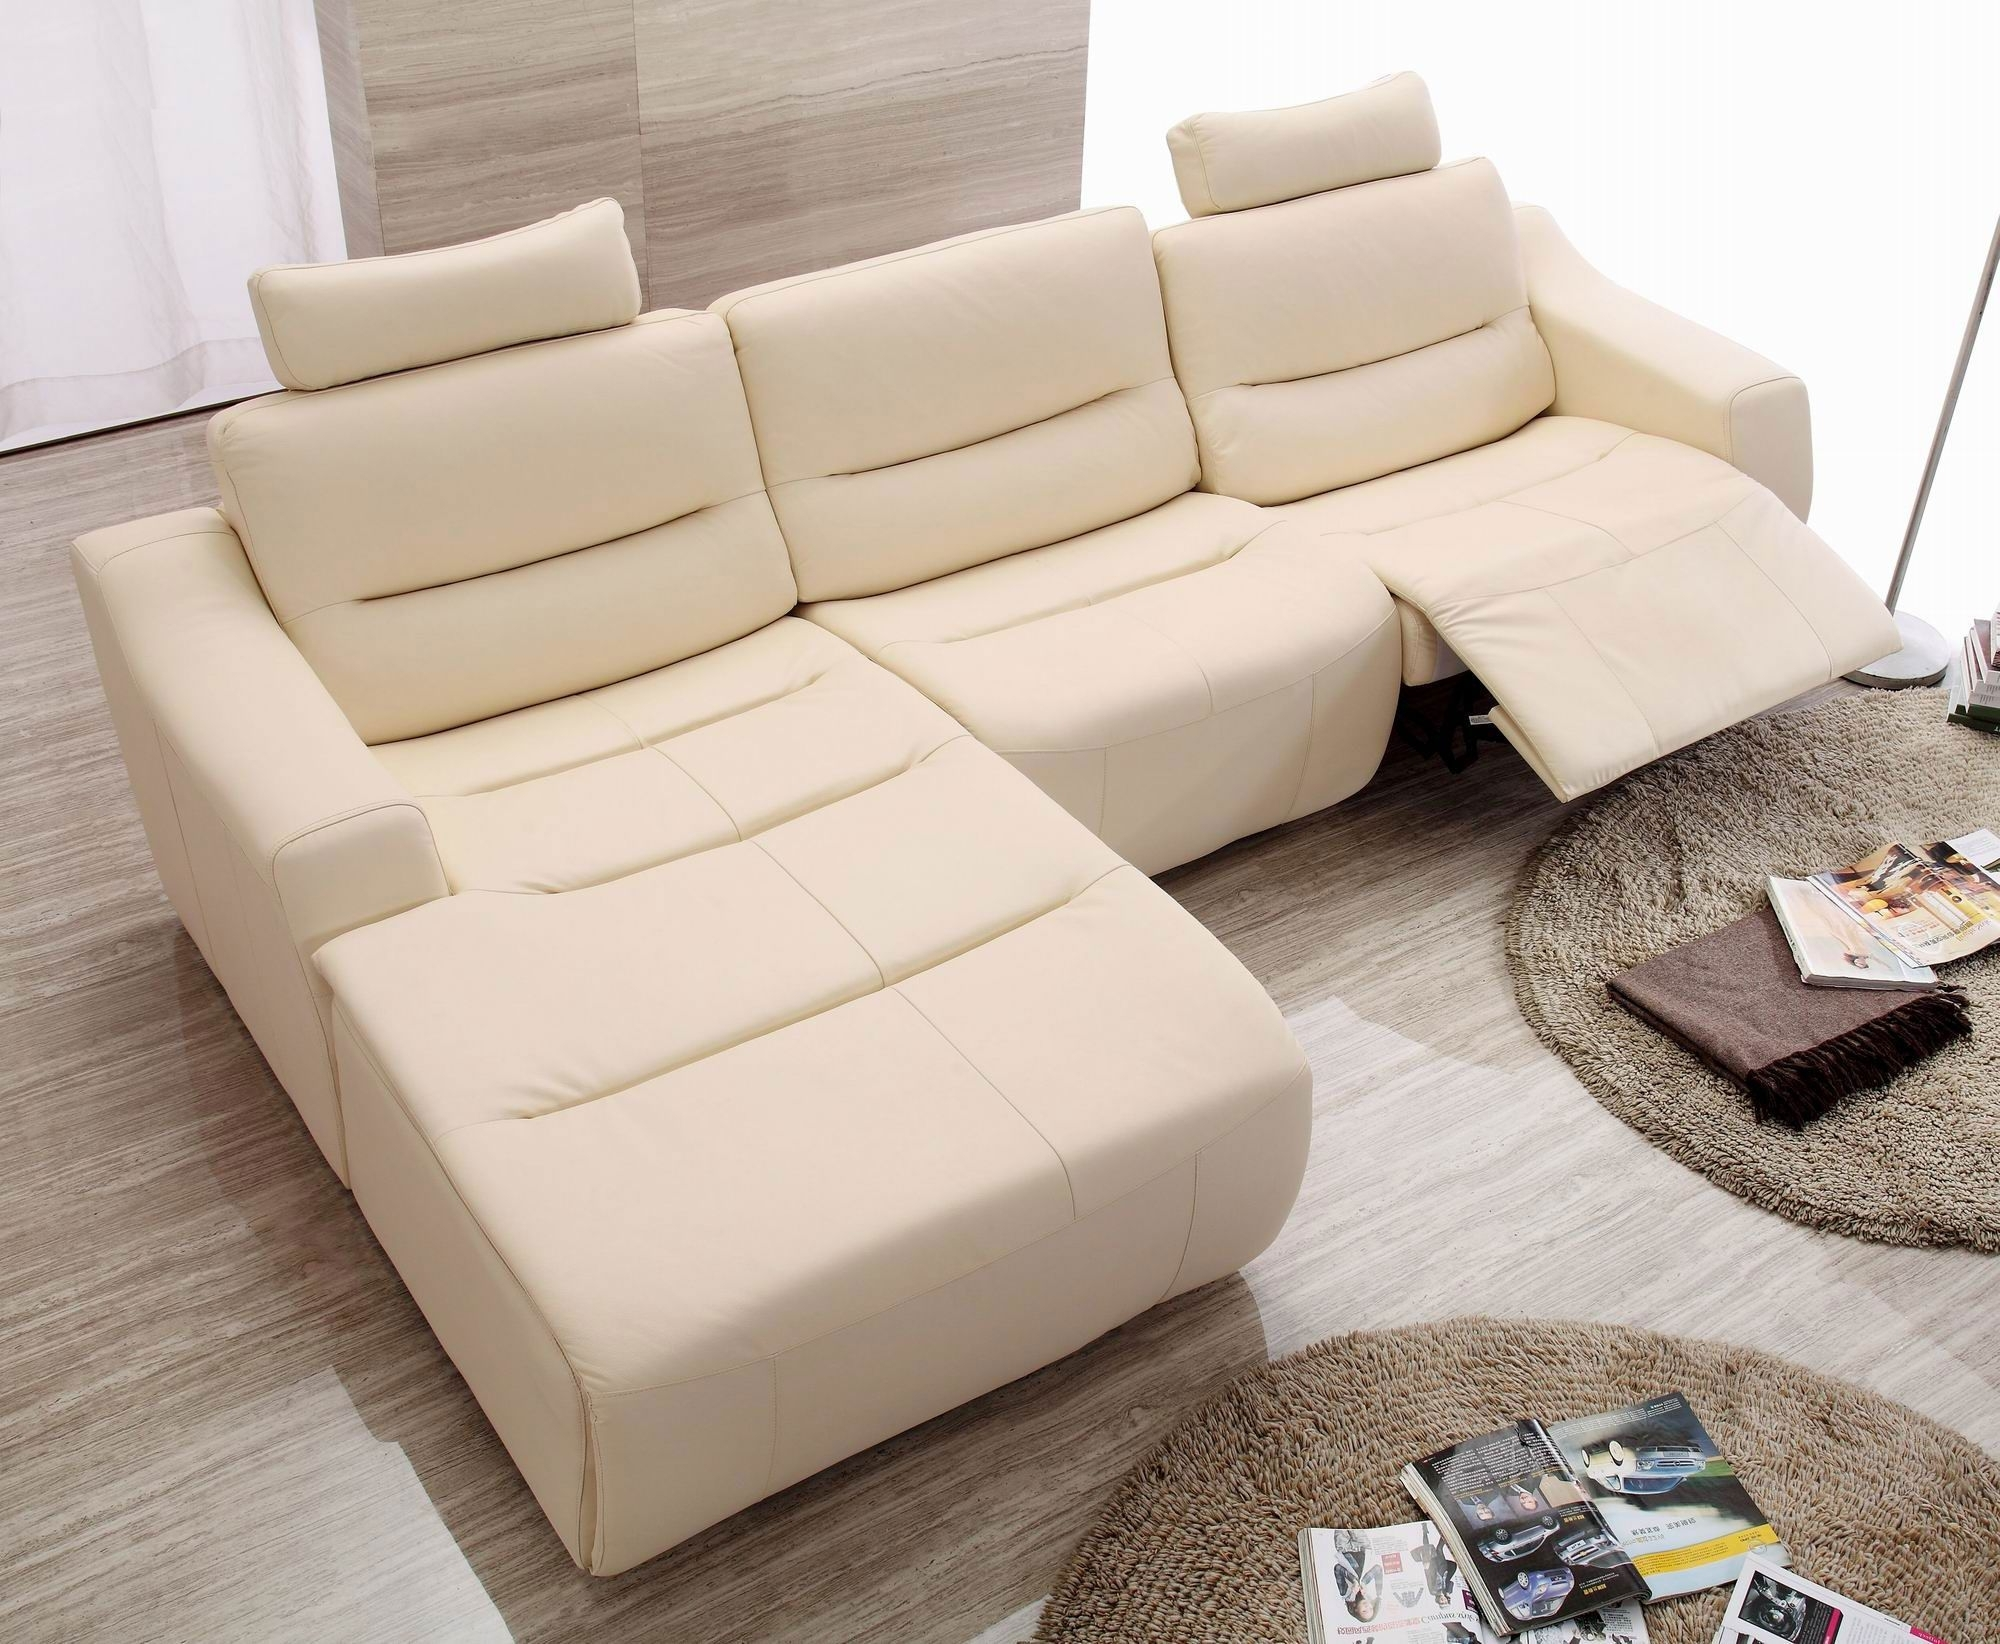 Most Current Sectional Sofas With Recliners For Small Spaces For White Or Beige Modern Contemporary Sofa With Chaise – Google (View 6 of 20)